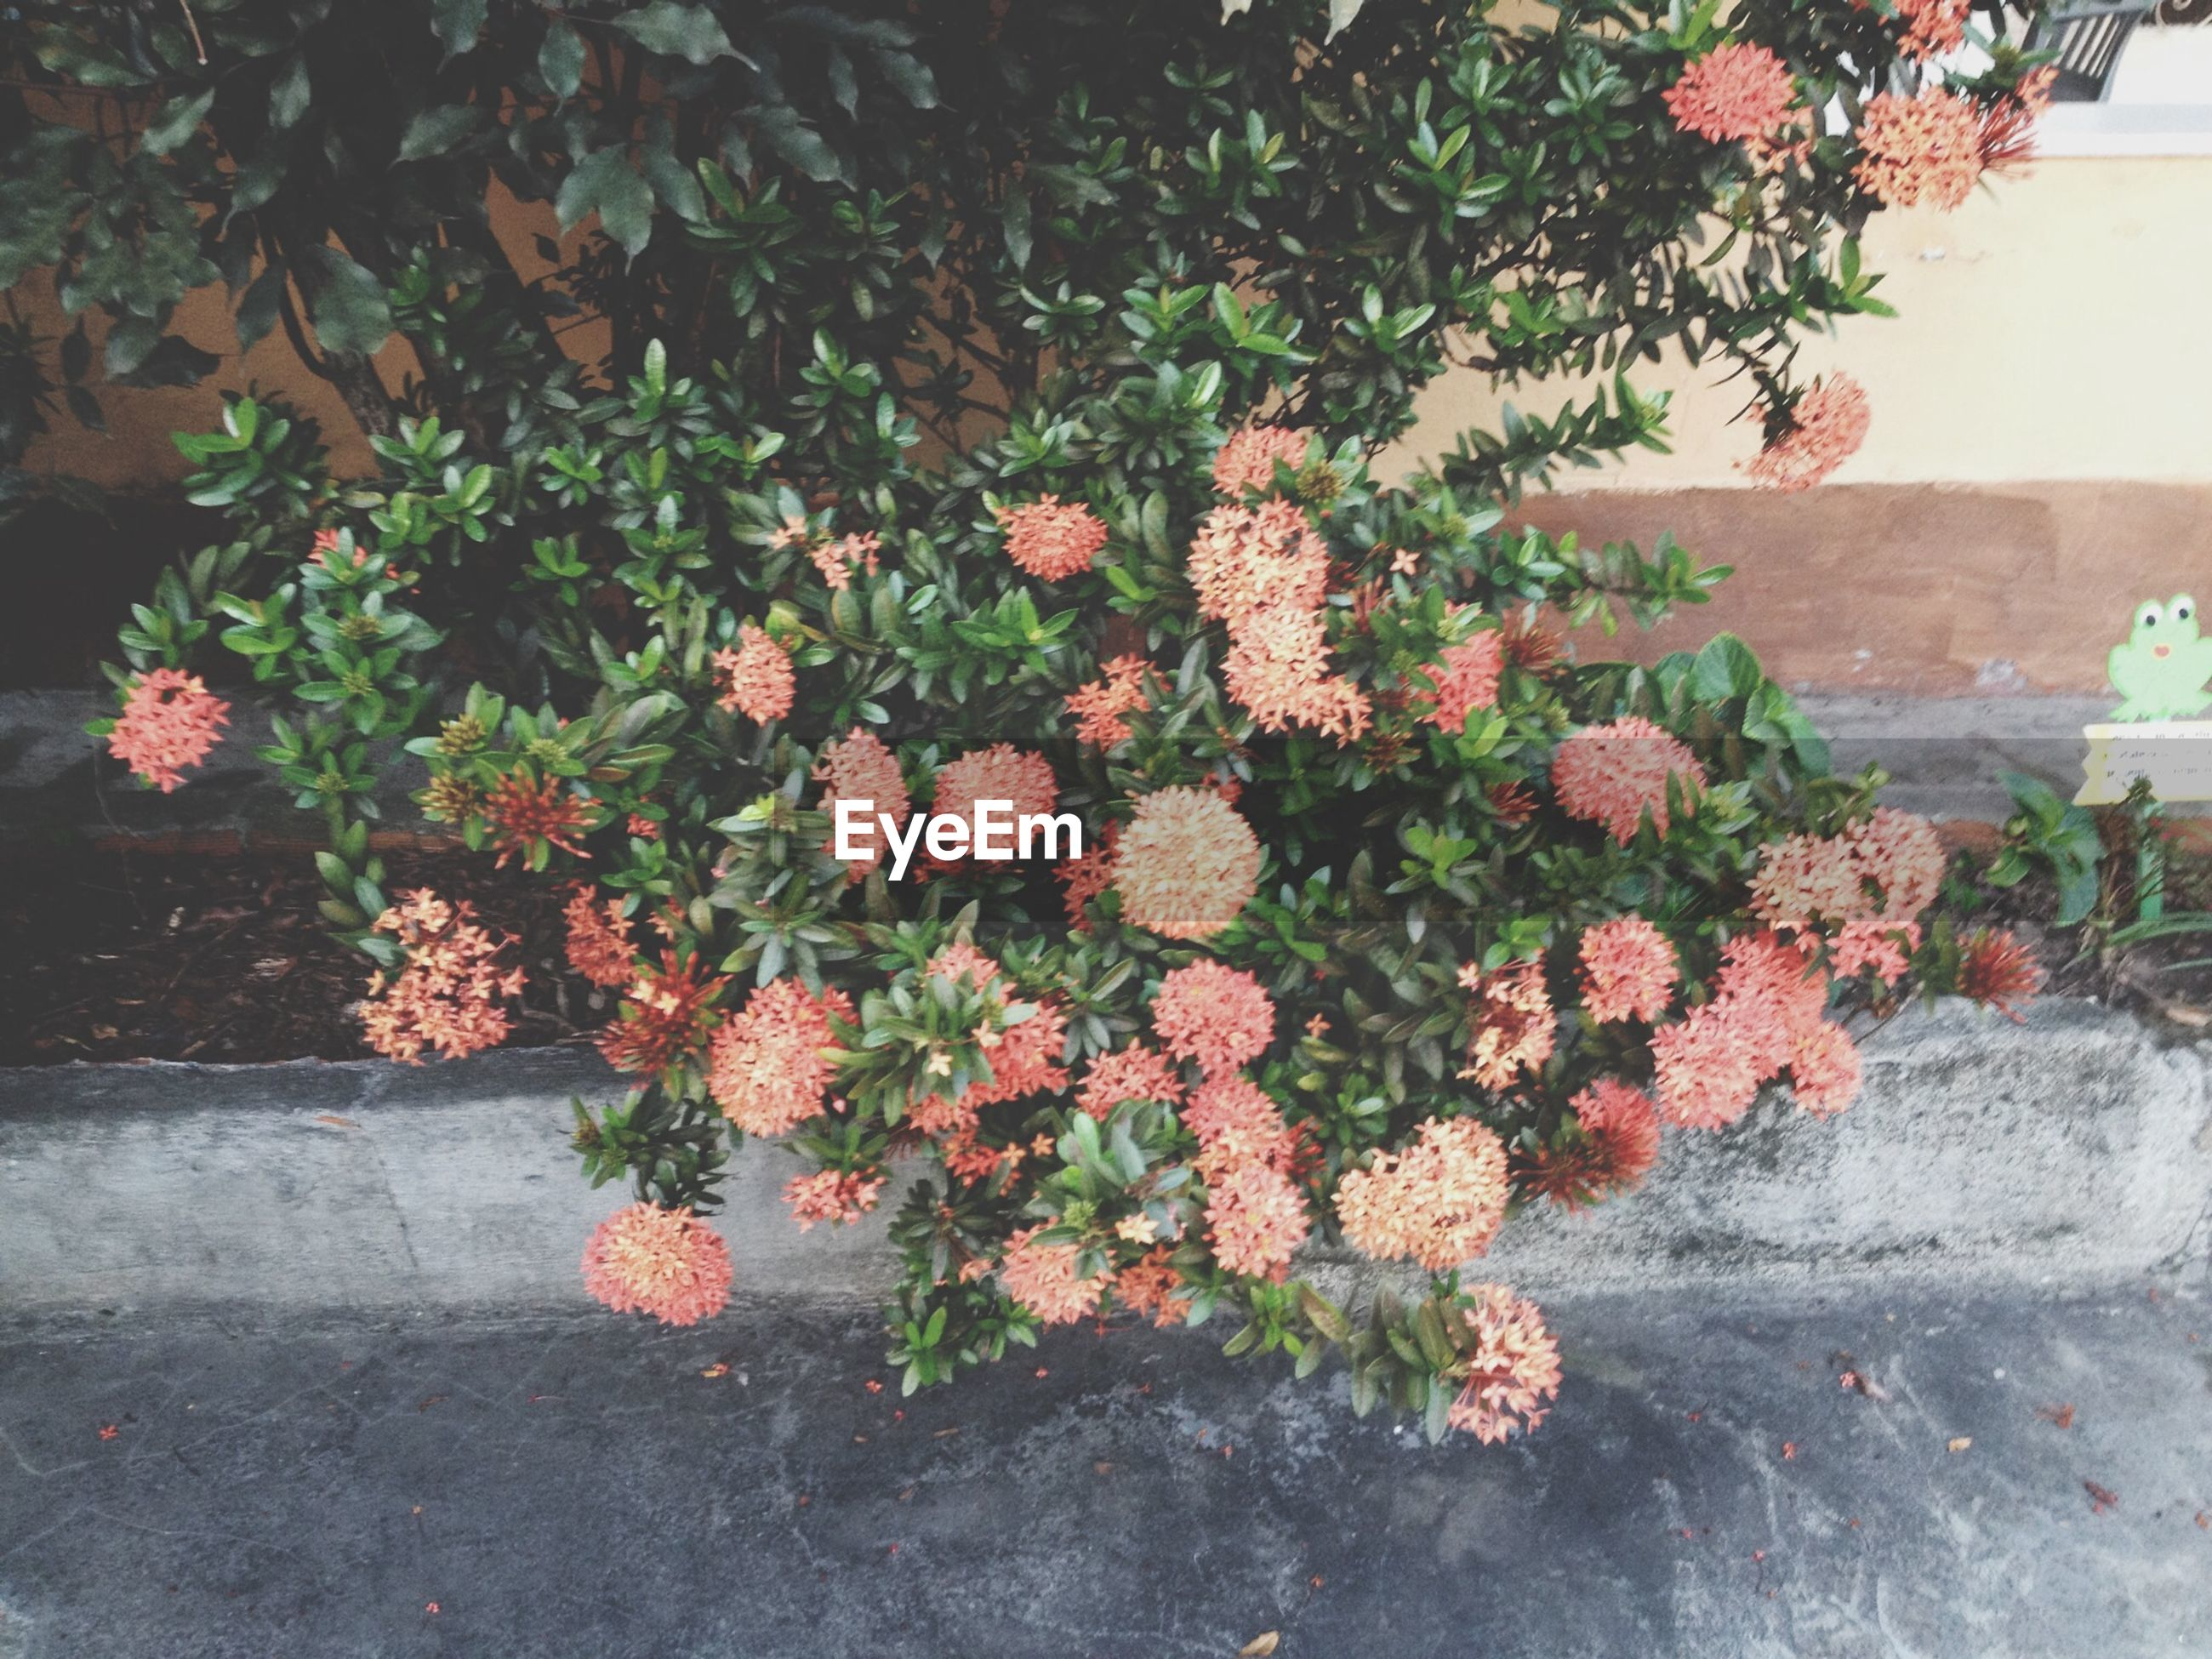 flower, plant, growth, freshness, fragility, potted plant, petal, leaf, nature, blooming, beauty in nature, in bloom, high angle view, wall - building feature, blossom, front or back yard, flower head, growing, no people, flower pot